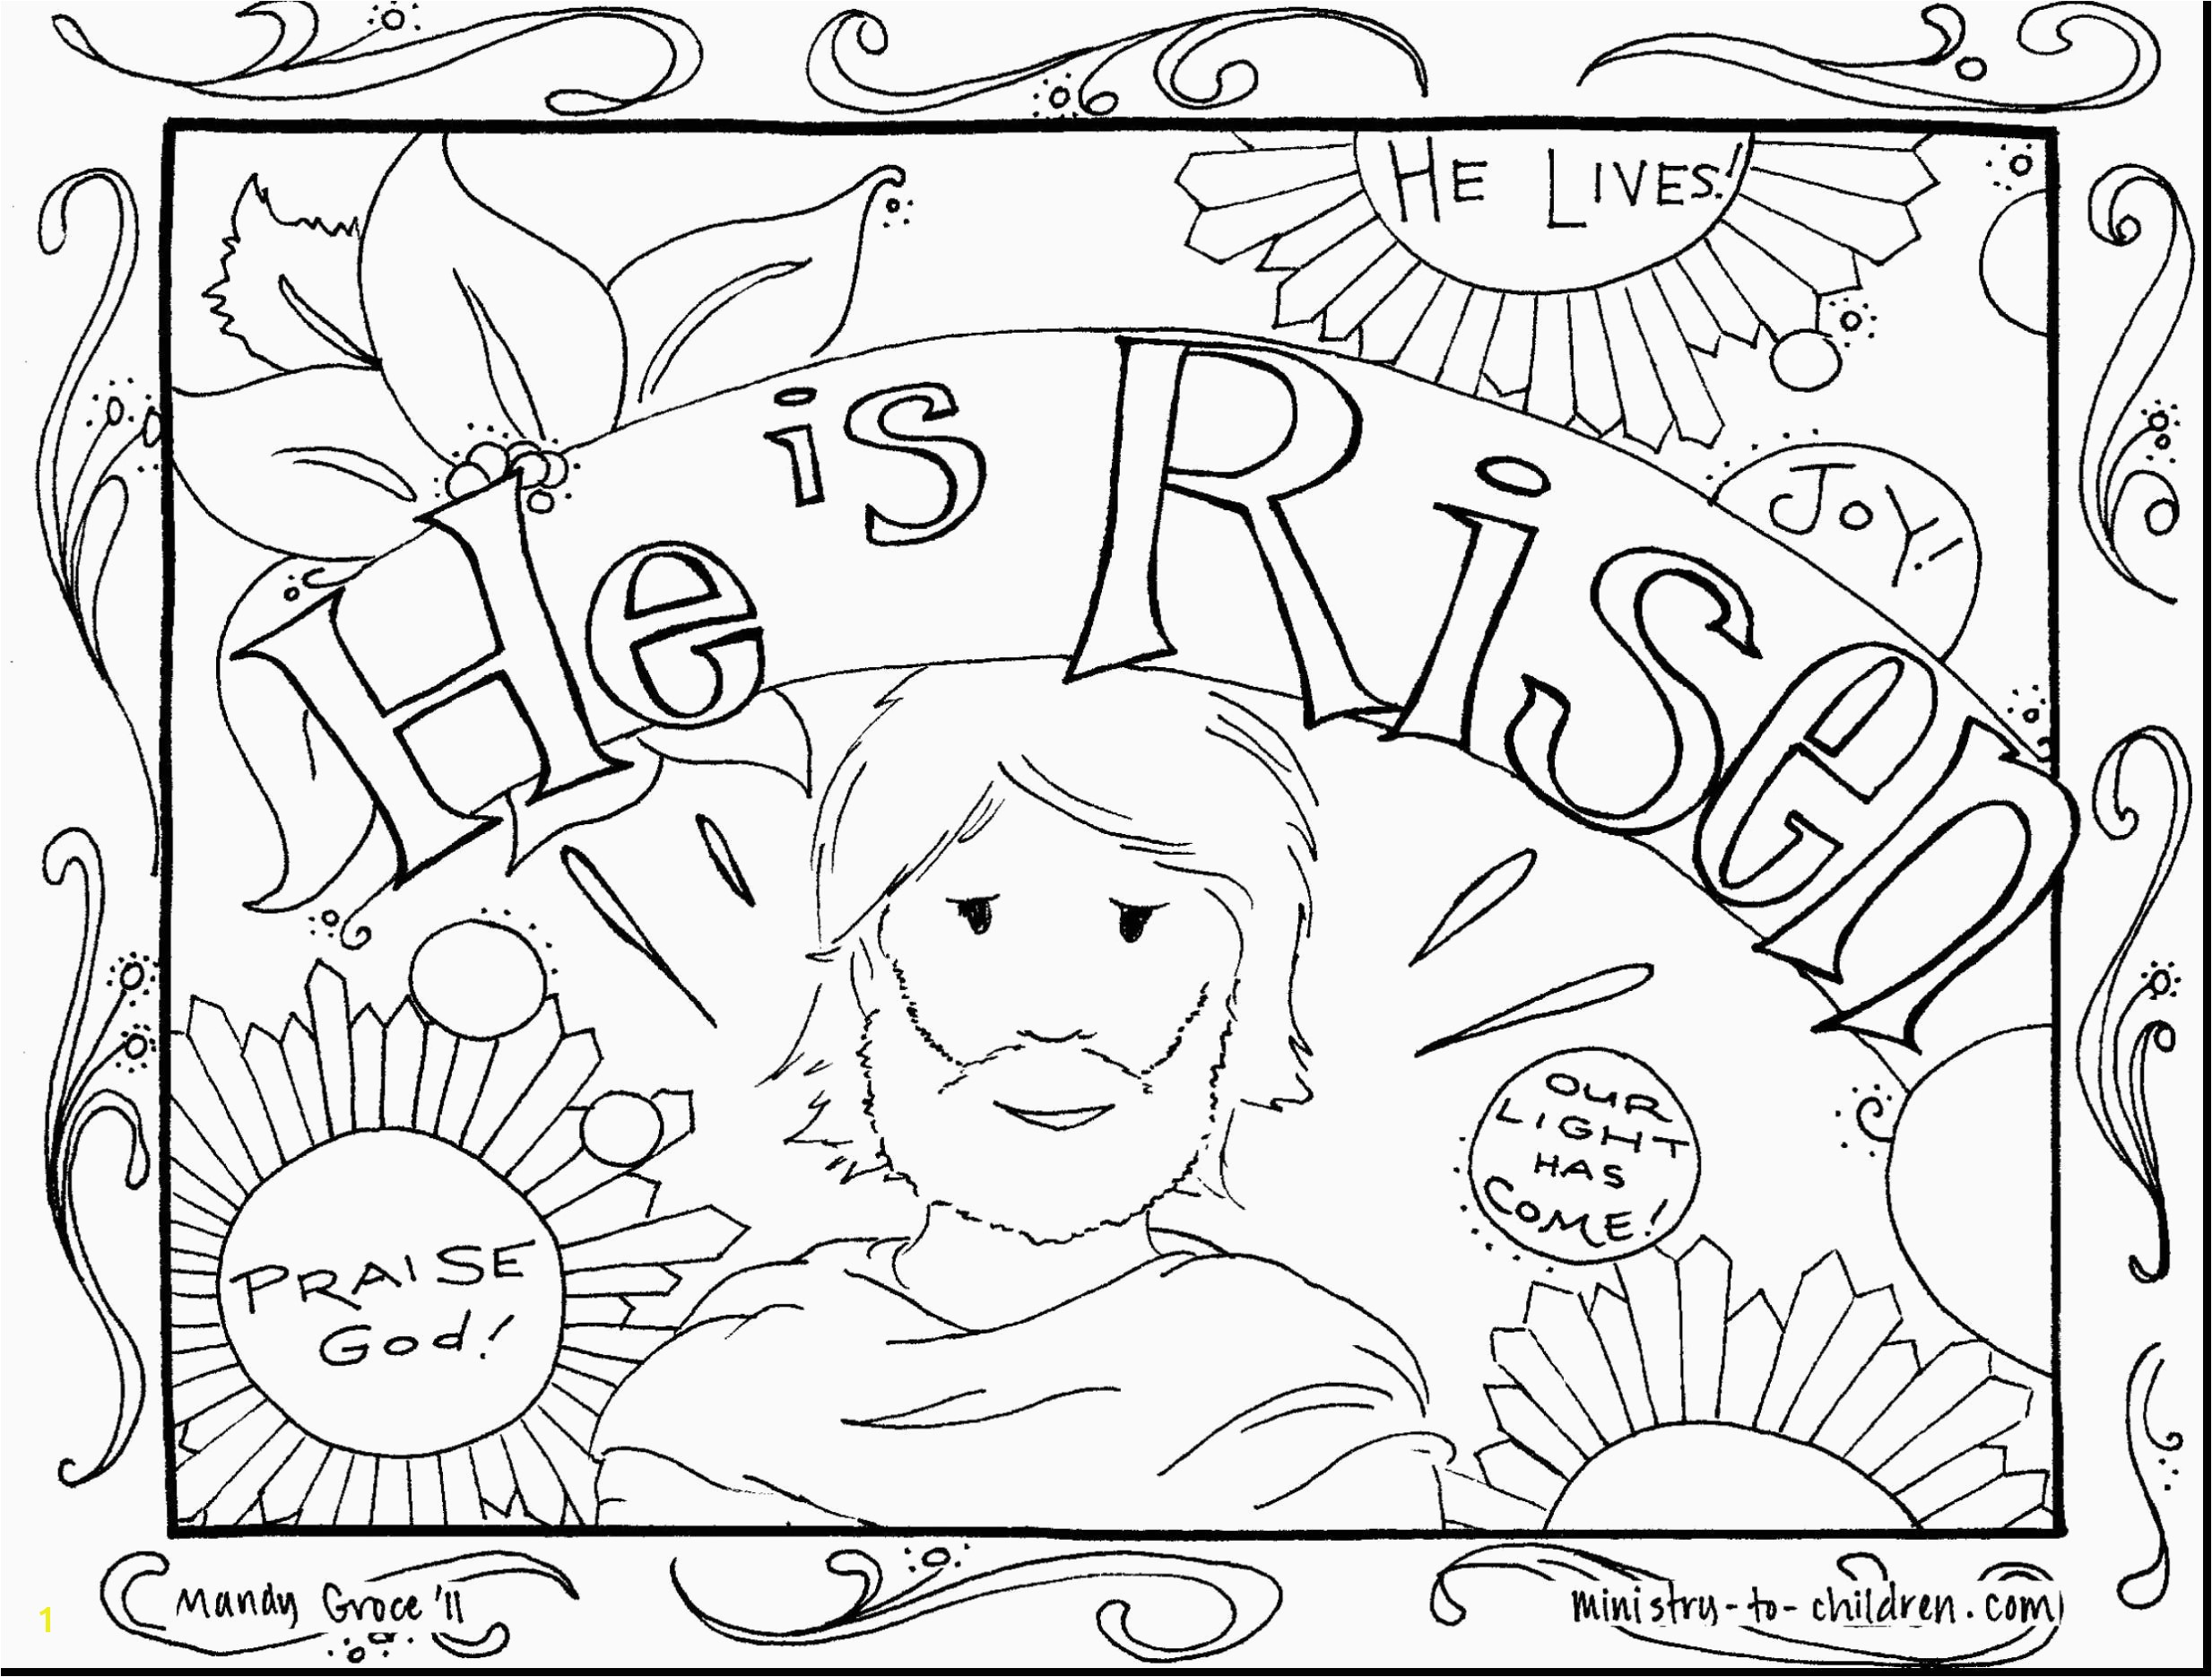 Coloring Pages Jesus Lovely Jesus Resurrection Coloring Page New Cross Color Pages Inspirational